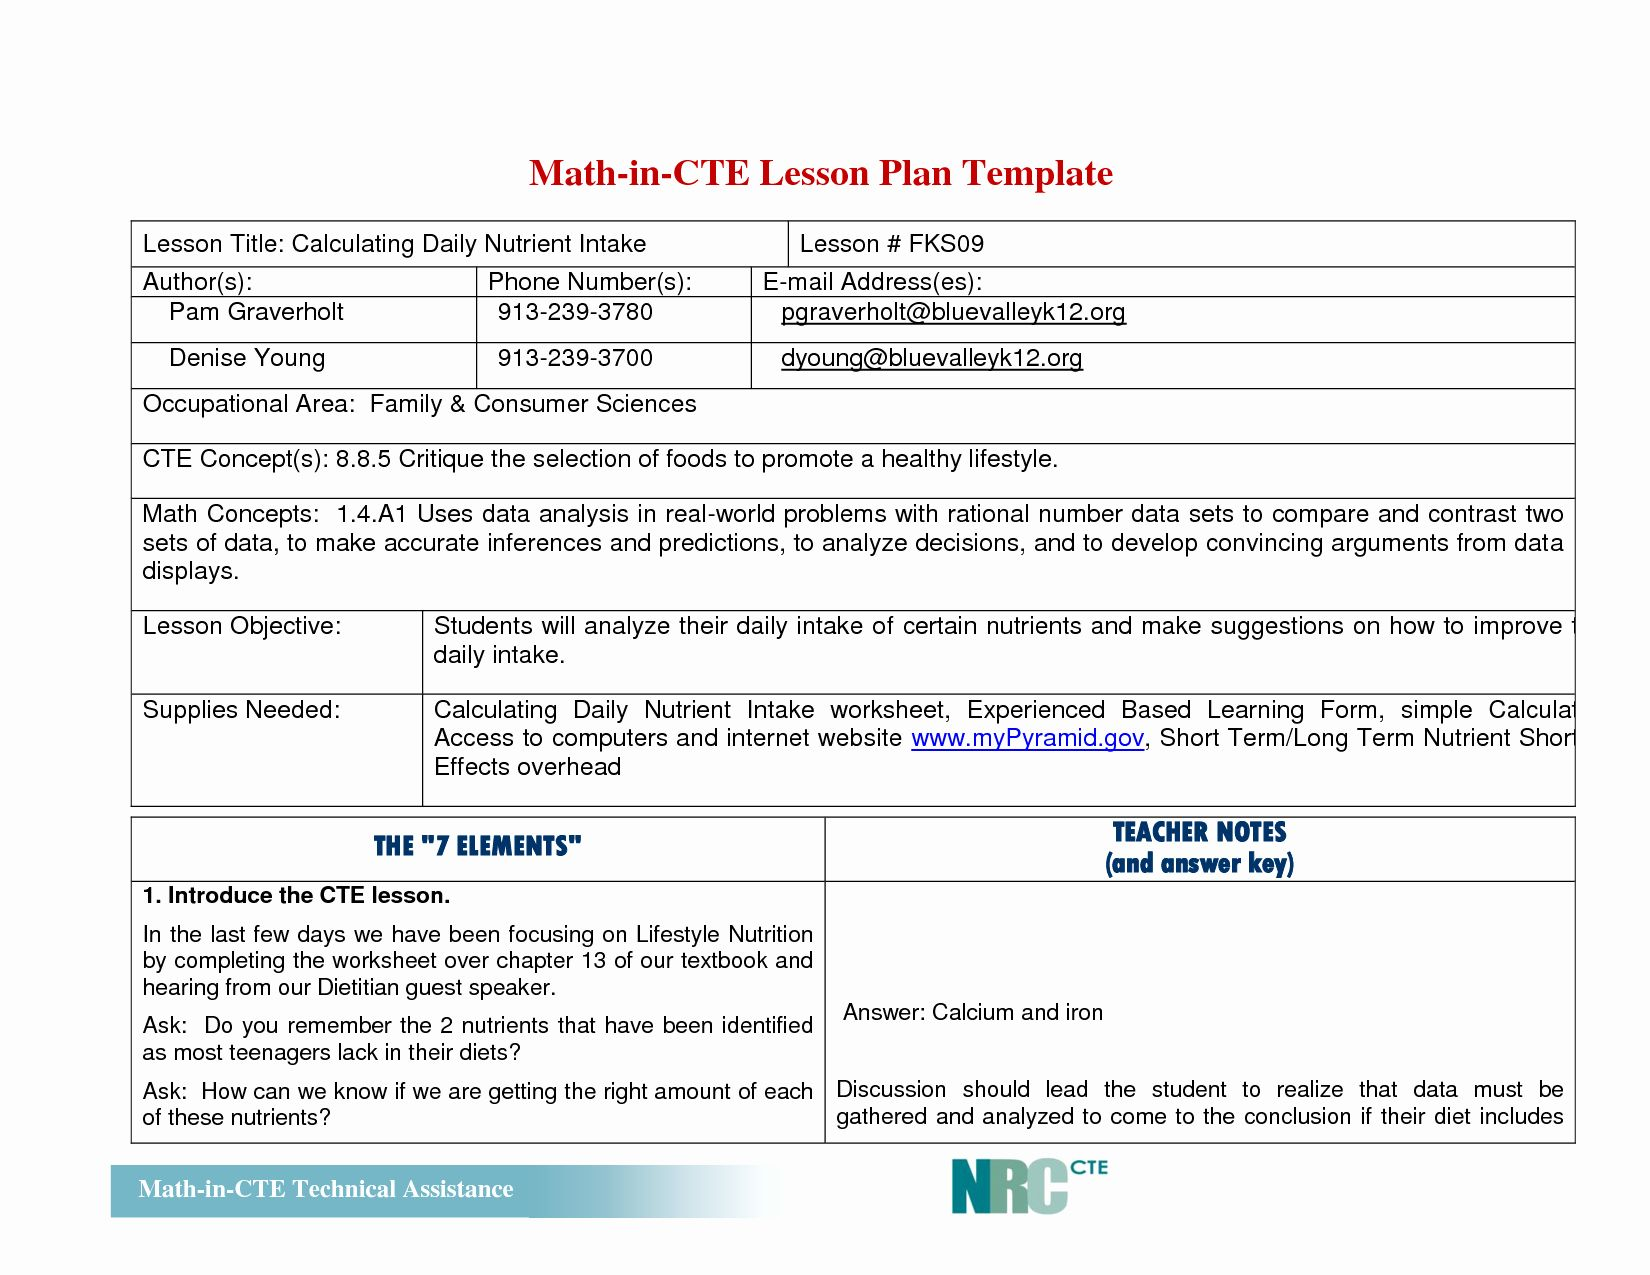 Elementary Math Lesson Plan Template Lovely Best S Of Math Lesson Plan Template Math Lesson Lesson Plan Templates Math Lesson Plans Math Lesson Plans Template [ 1275 x 1650 Pixel ]